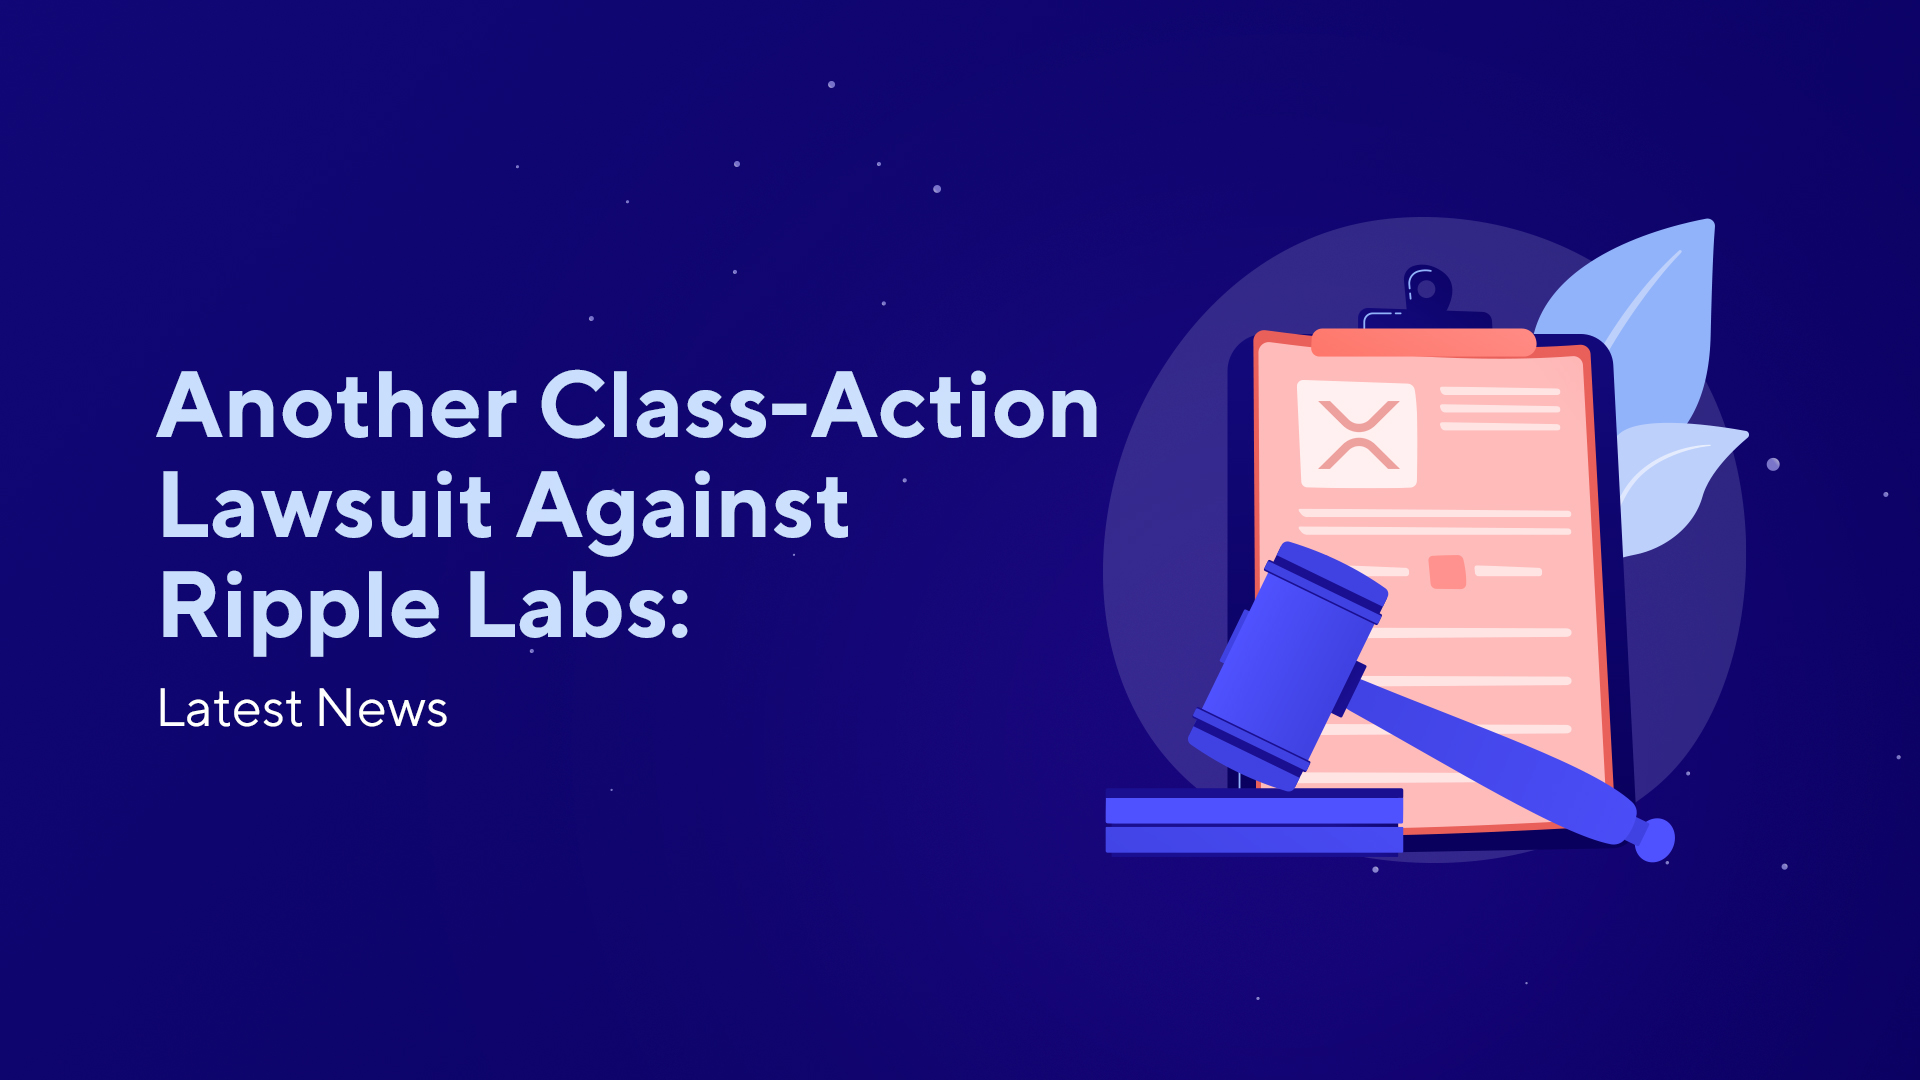 Another Class-Action Lawsuit Against Ripple Labs: Latest News